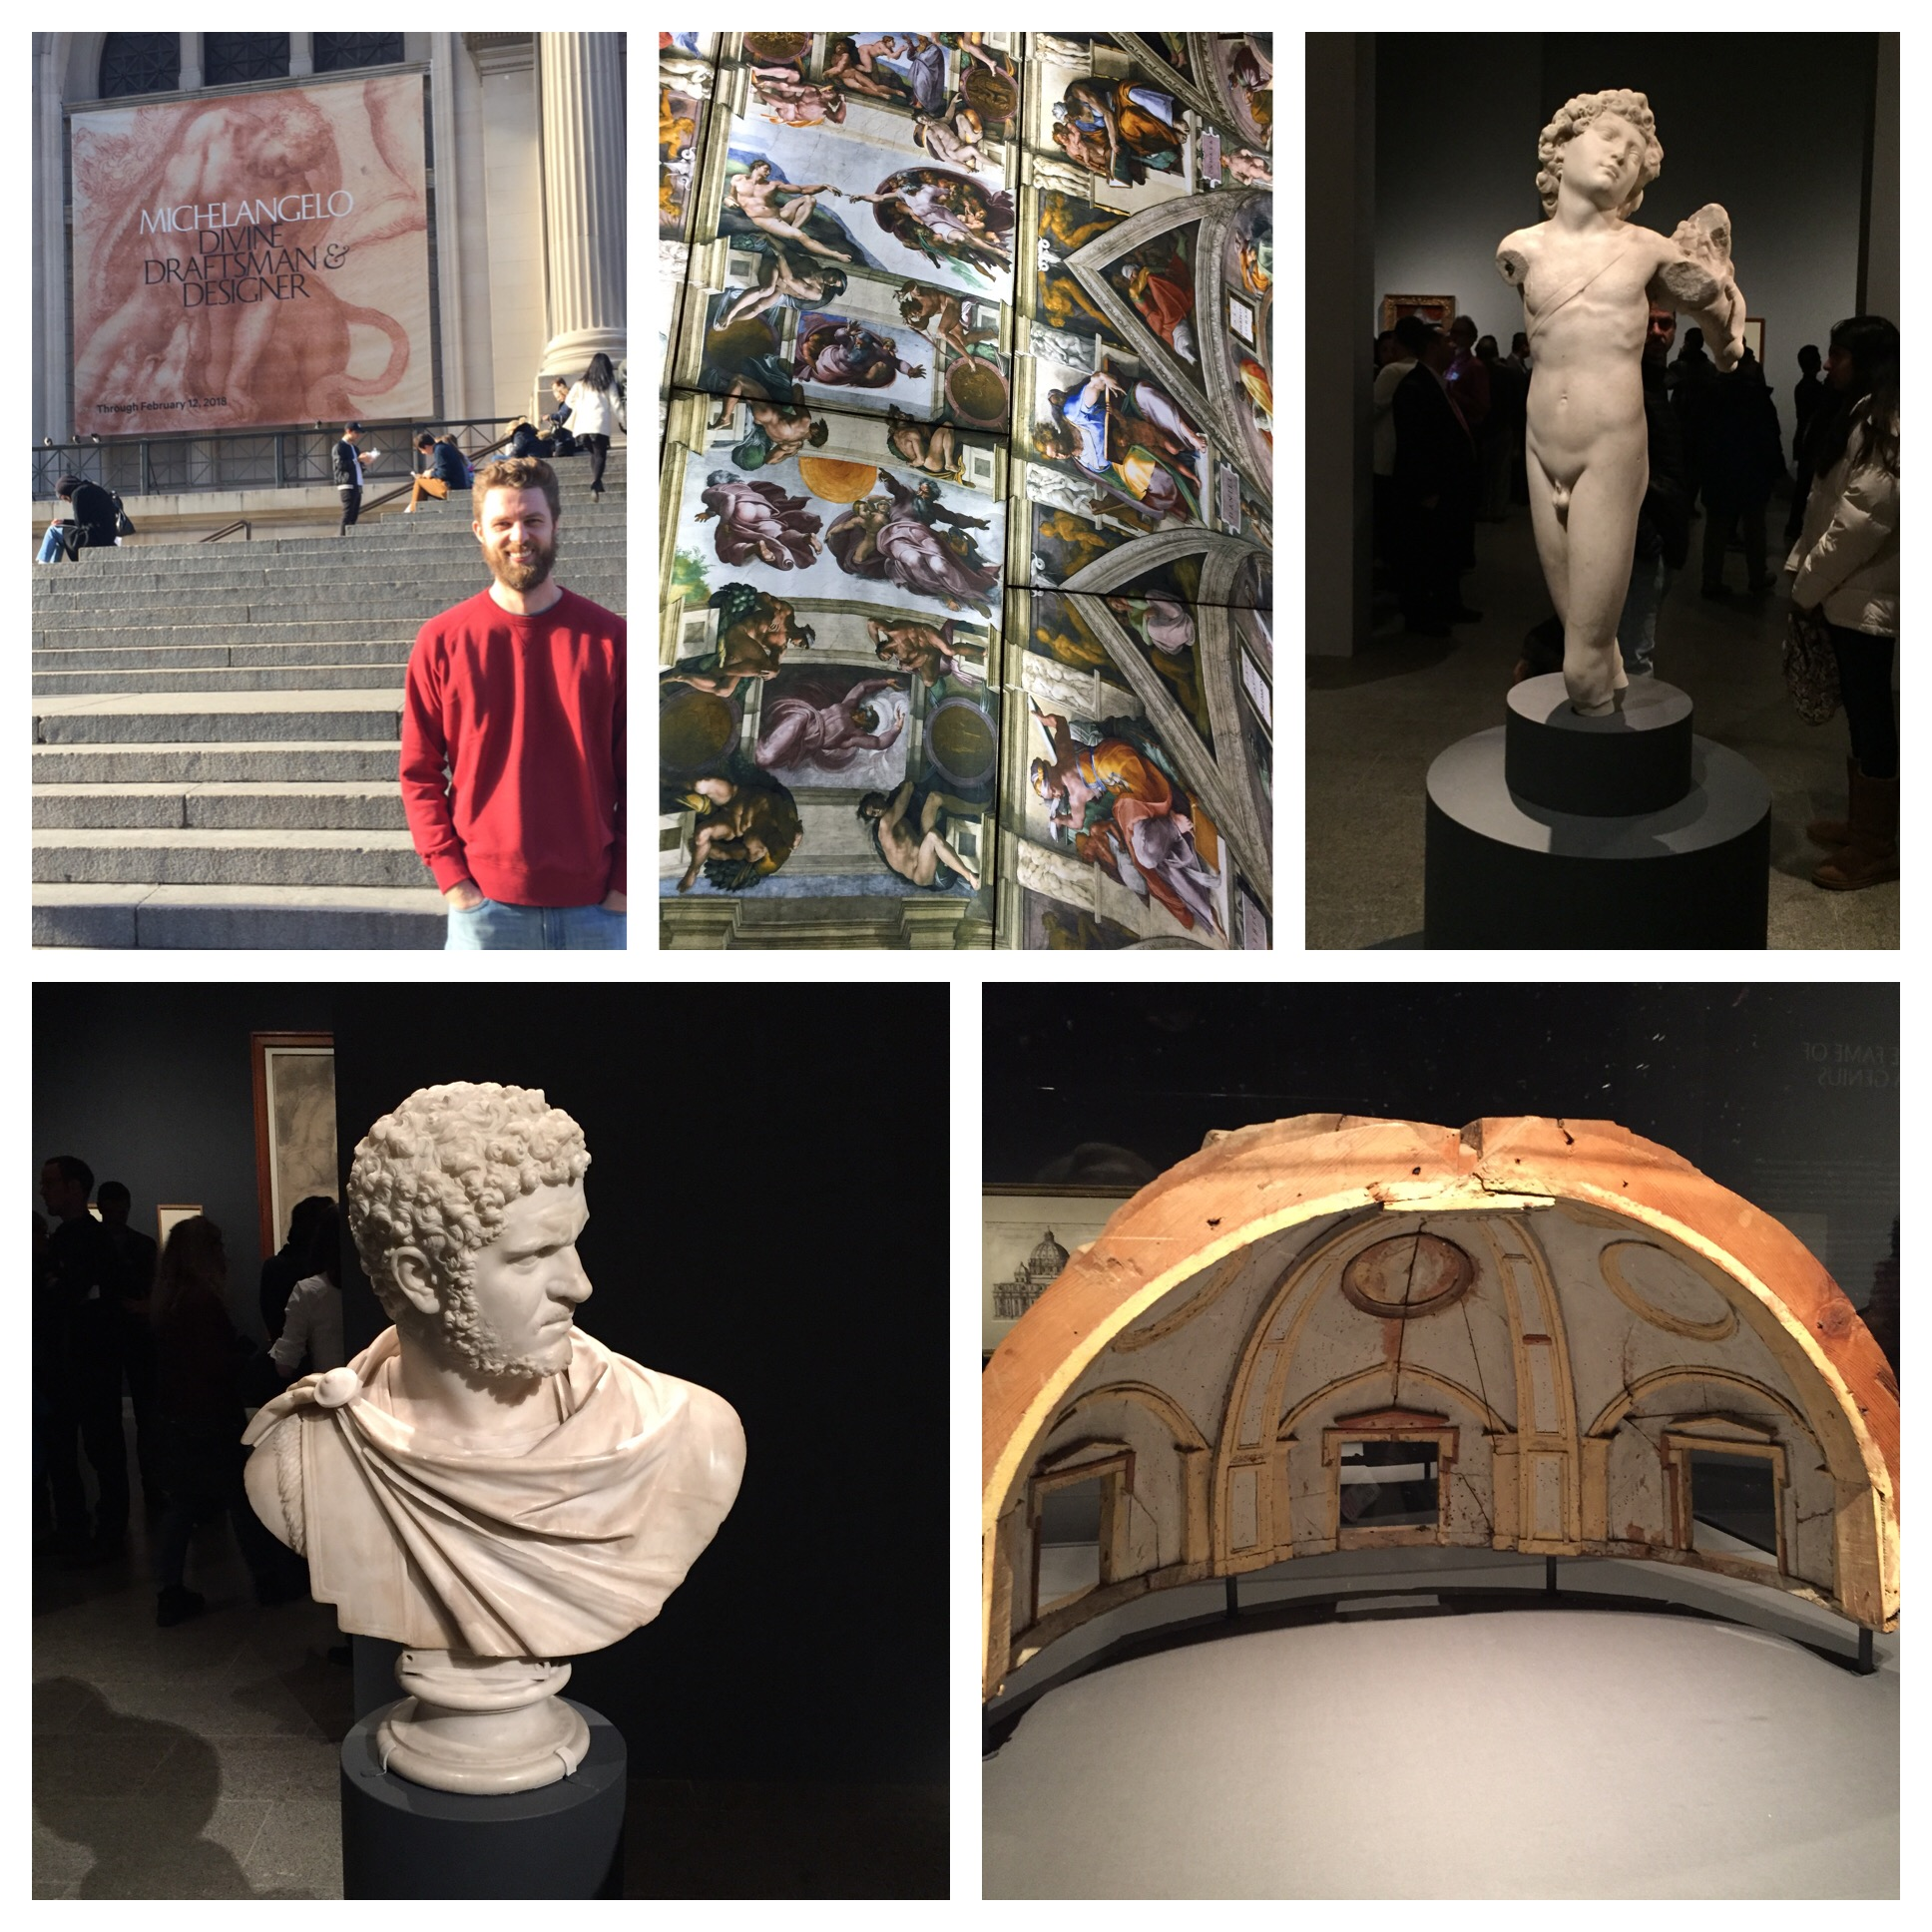 Includes a digital reproduction of the Sistine Chapel. Did you know Michelangelo designed St Peter's in Rome? The wooden model lower right is an original he built while designing it.